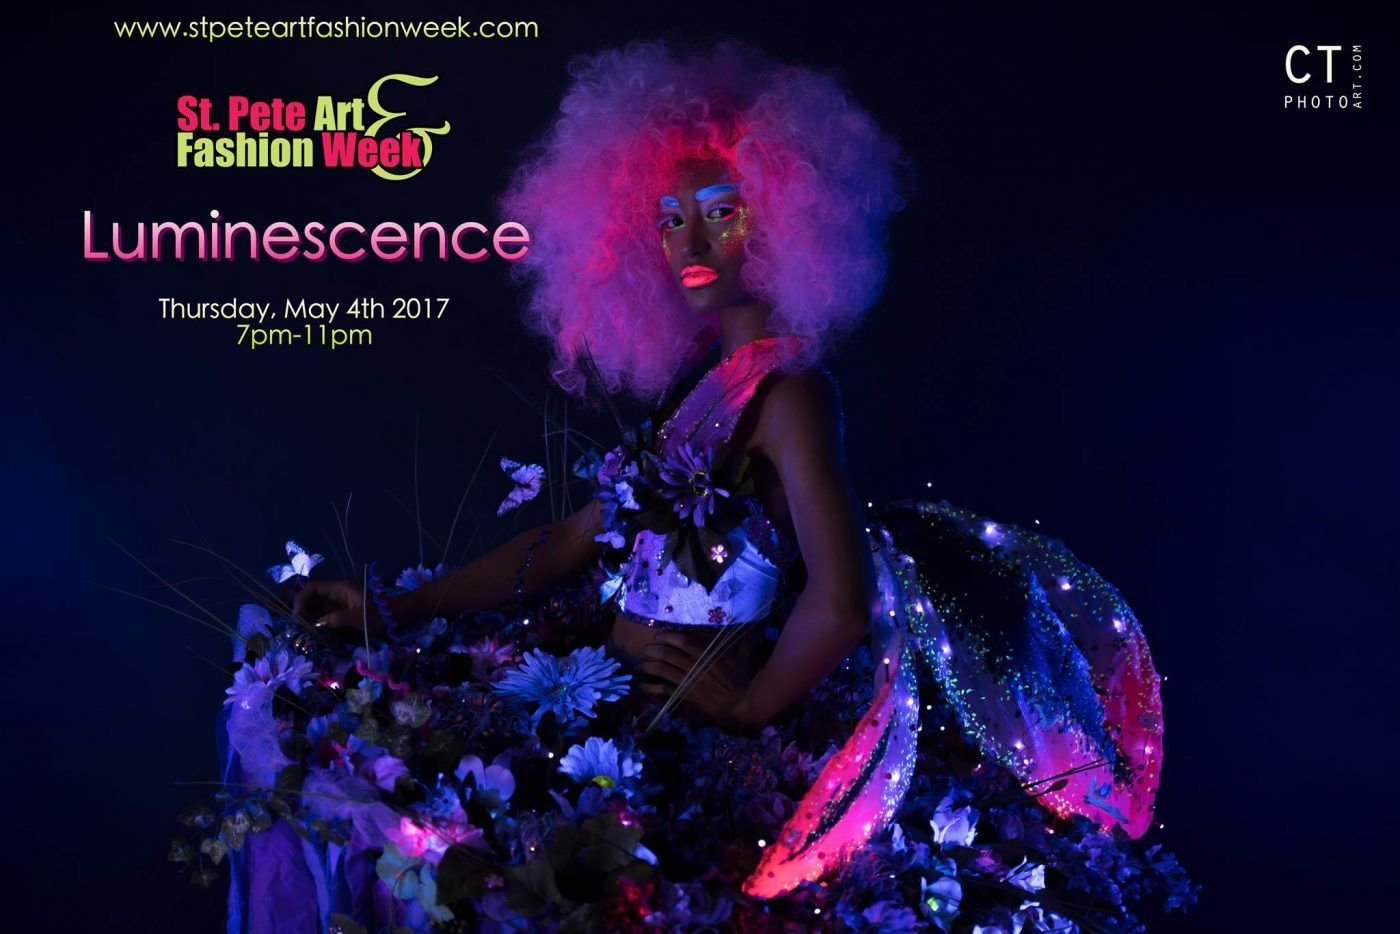 2017 05-04 St. Pete Art Fashion Week Blacklight Fashion and Art Experience show Luminescence at DTSP venue NOVA 535 flyer